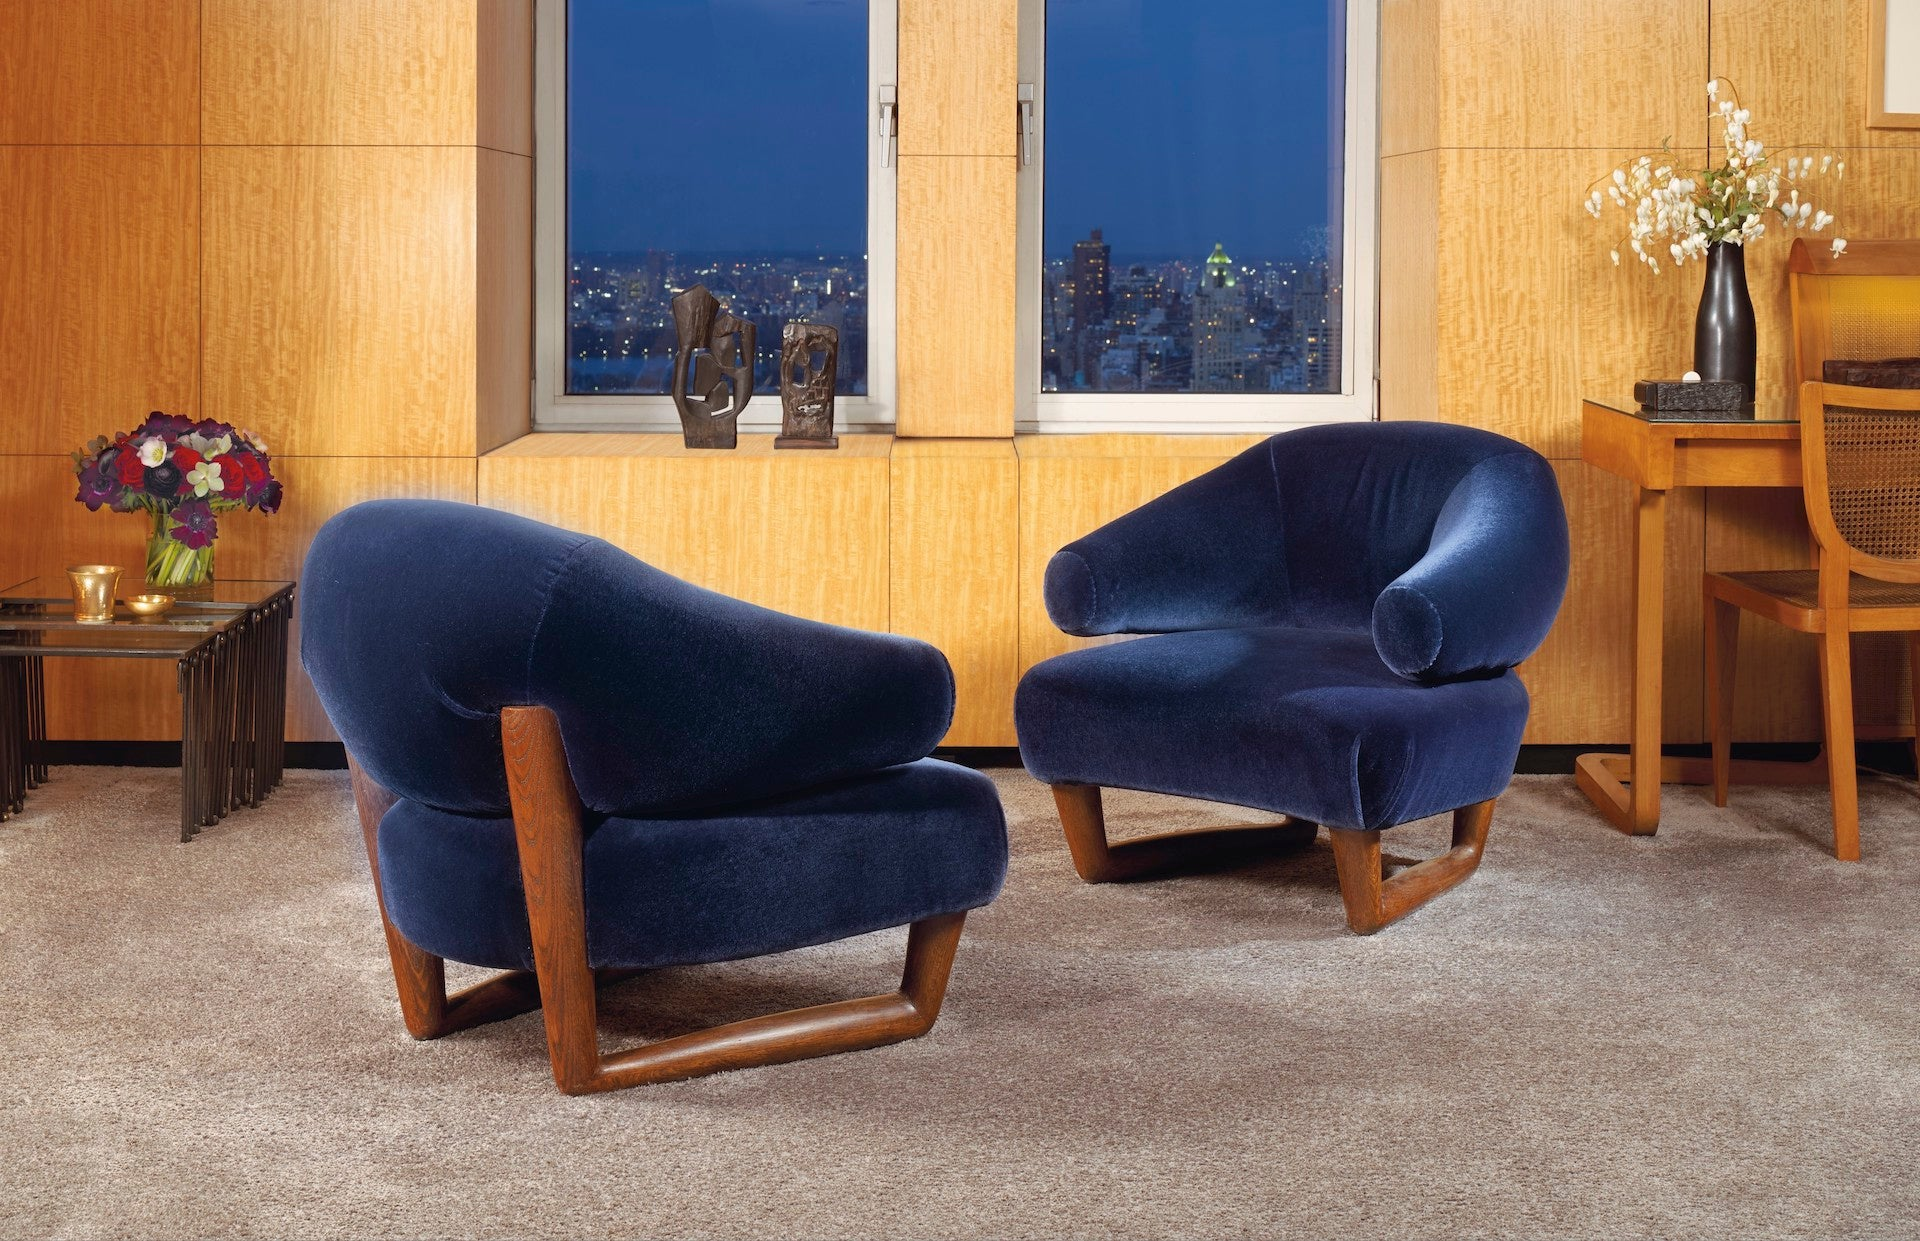 Christie's New York 26 May 2021 - Paris in New York: A Private Collection of Royère, Vautrin, Jouve [lot 11]: Pair of Sculpture Armchairs by Jean Royere, c. 1955. Estimate: $200,000 - $300,000. Sold: $882,000. Photo © Christie's Images Limited 2021